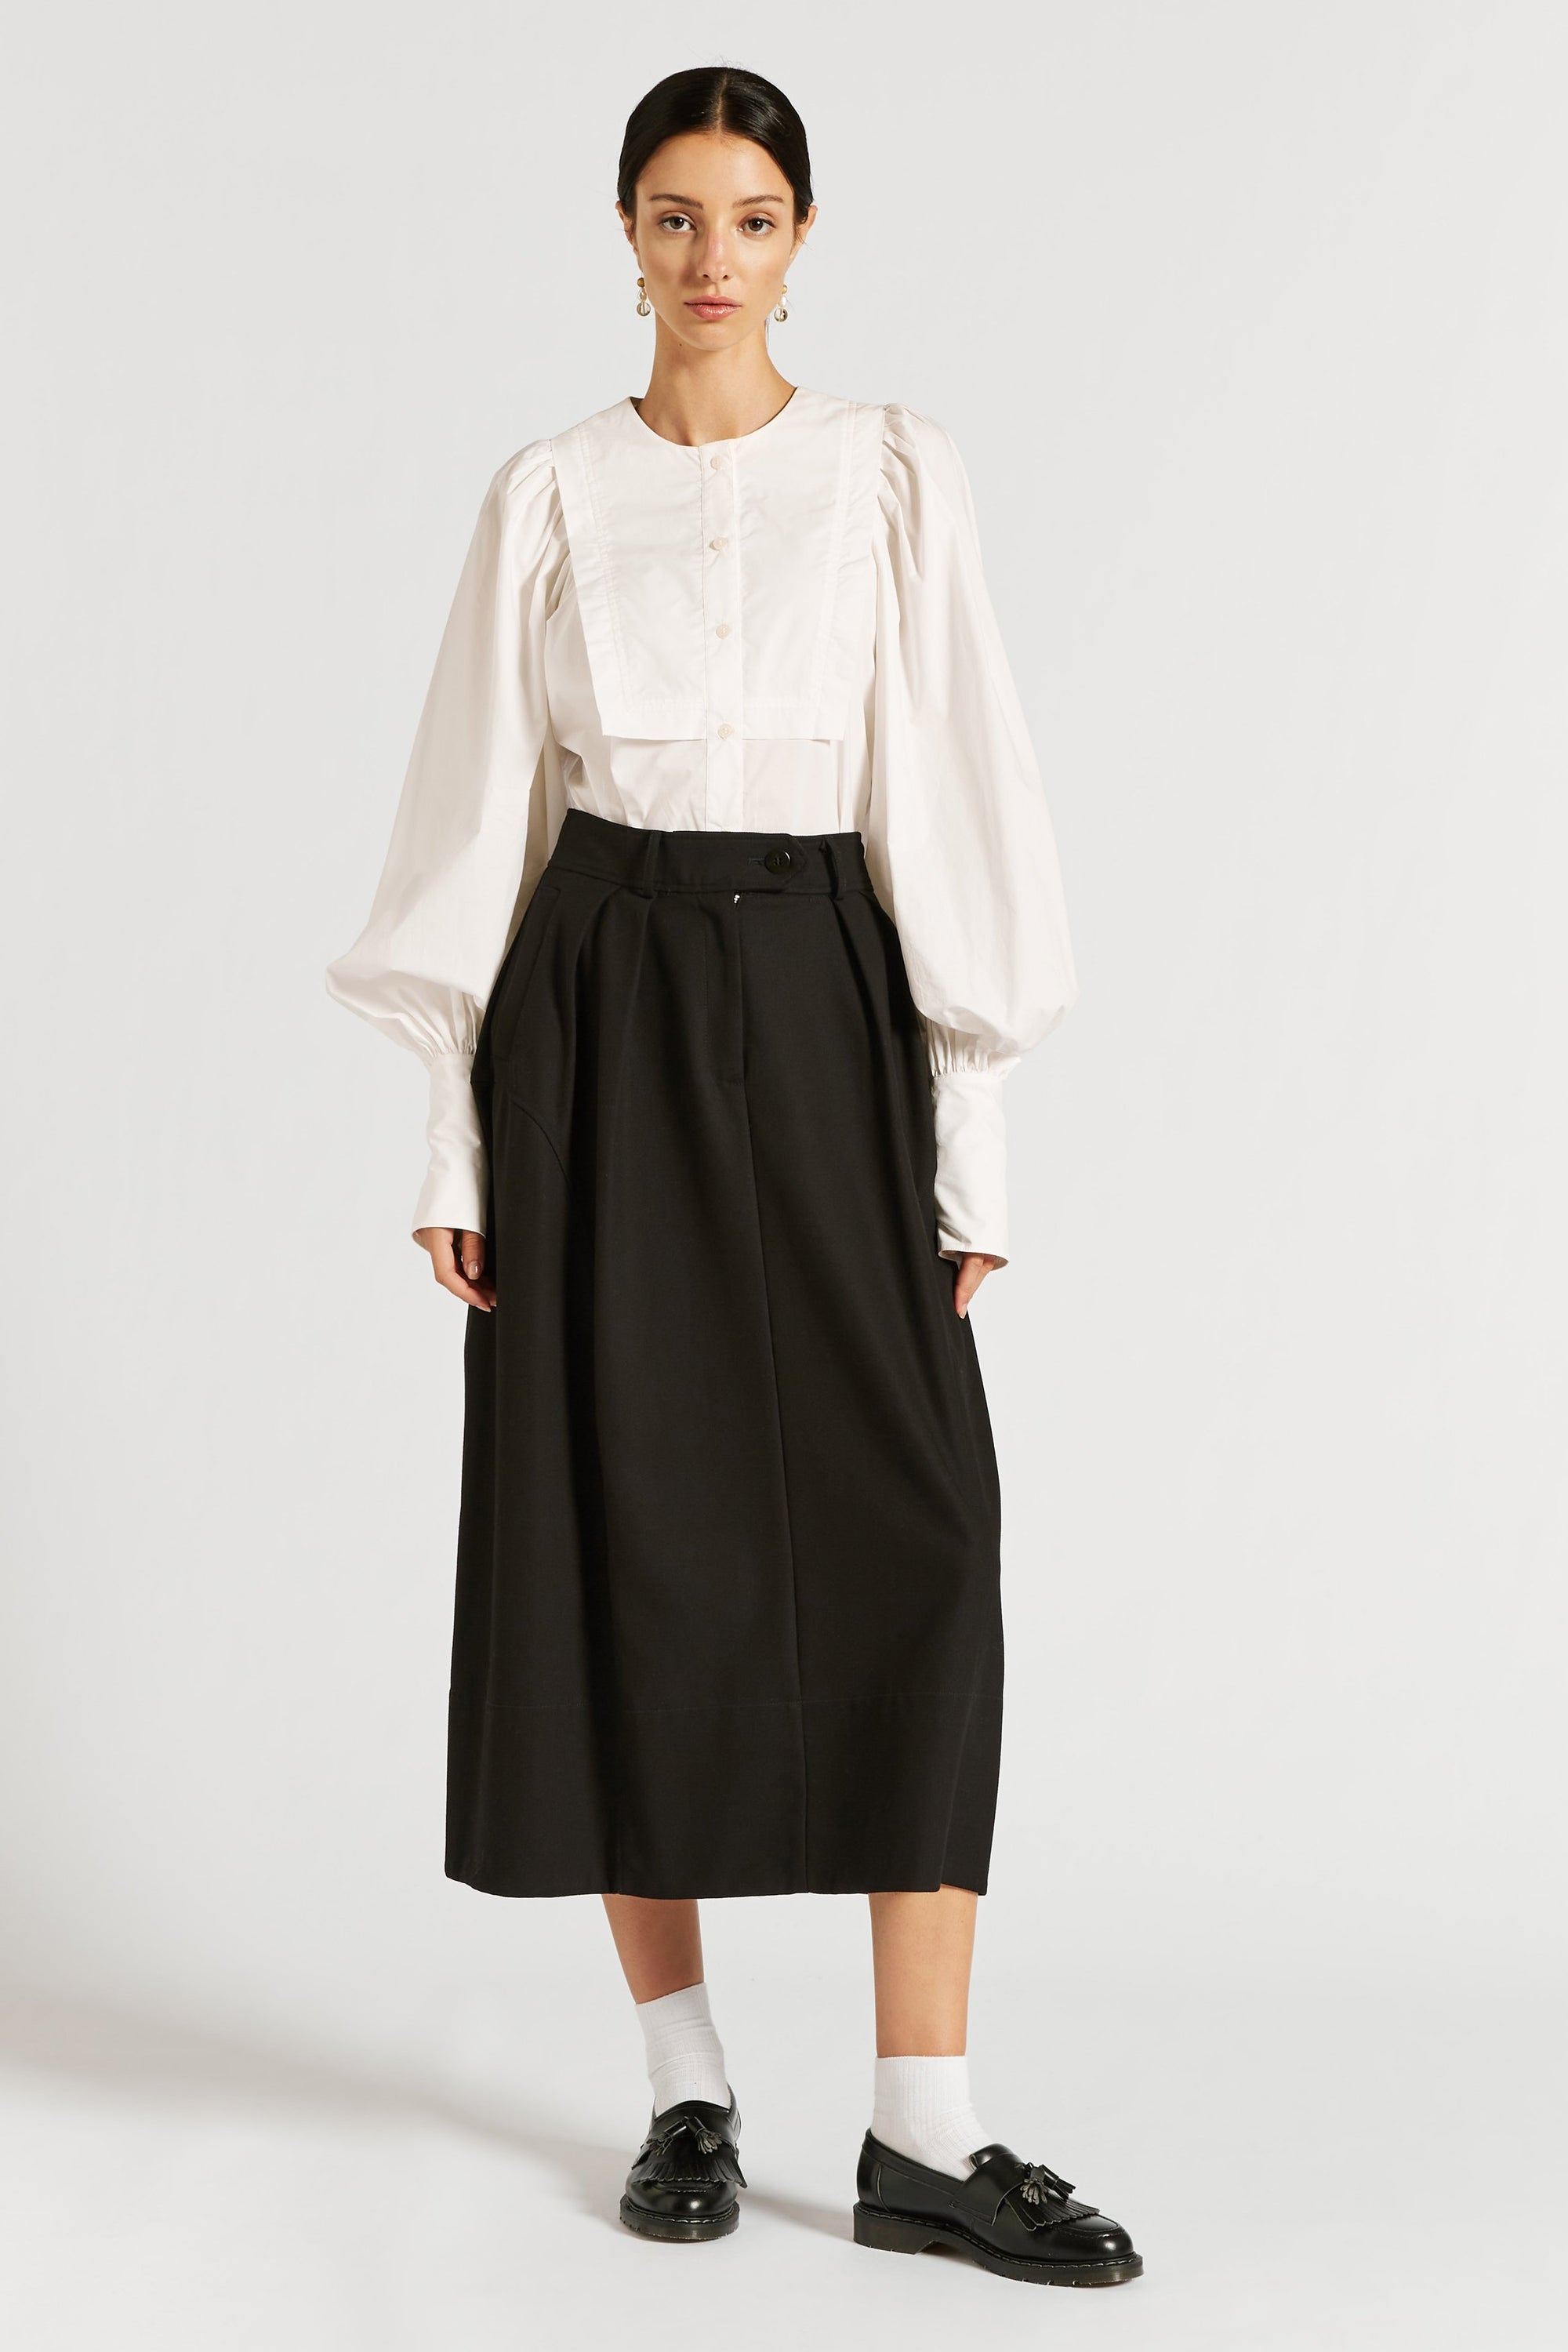 Spencer Pleat Front Cocoon Skirt